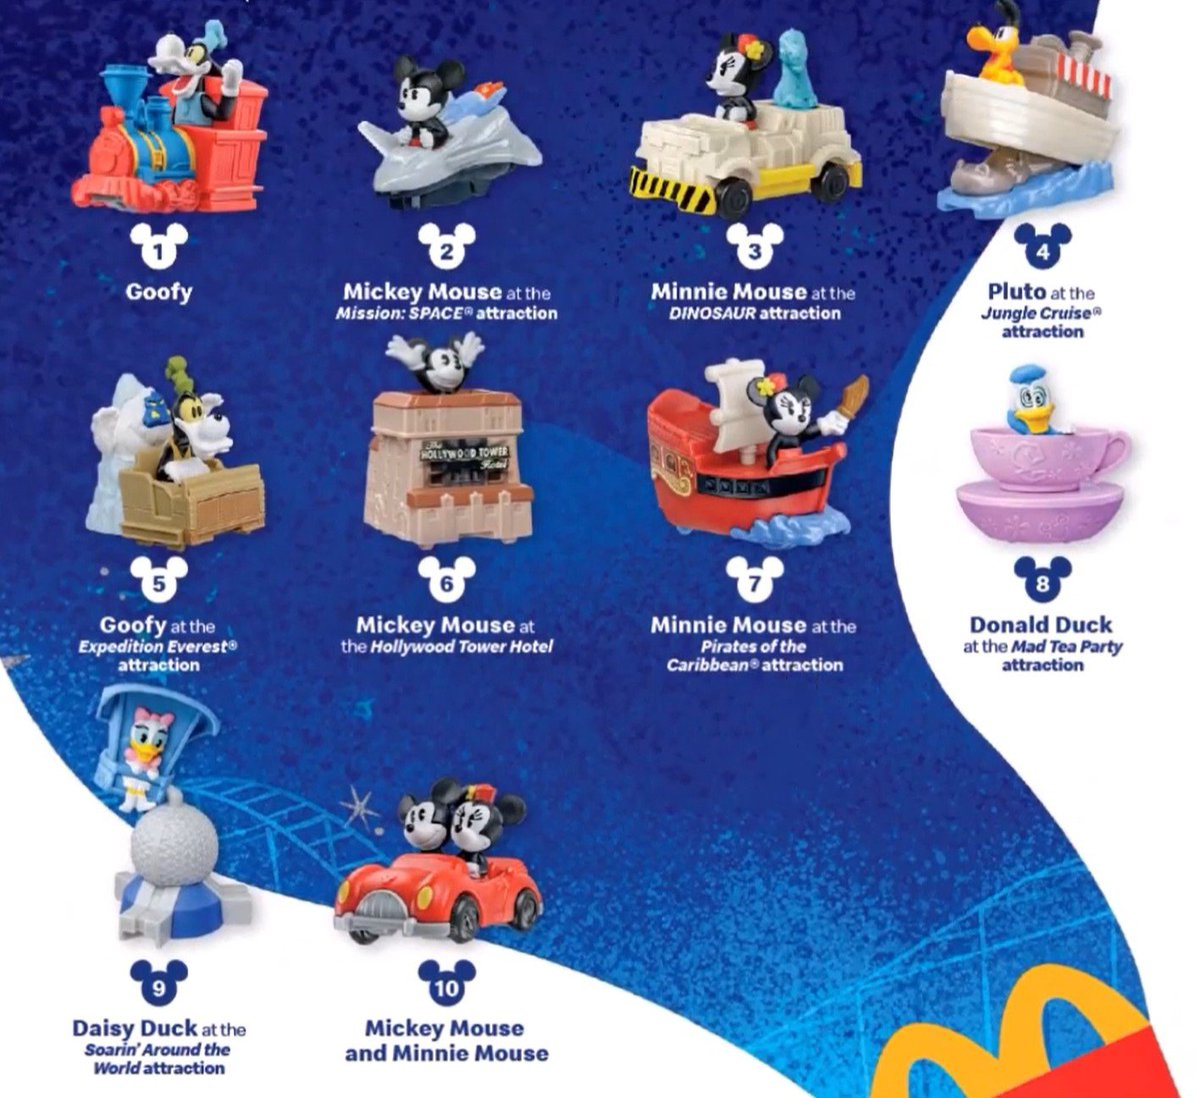 @McDonalds when will we be able to buy the entire set of #DisneyRunawayRailway toys?! Some locations are saying entire collection will be for sale starting tomorrow but others say the toys will no longer be sold... what's the deal? #MickeyandMinniesRunawayRailway #McDonalds #toys